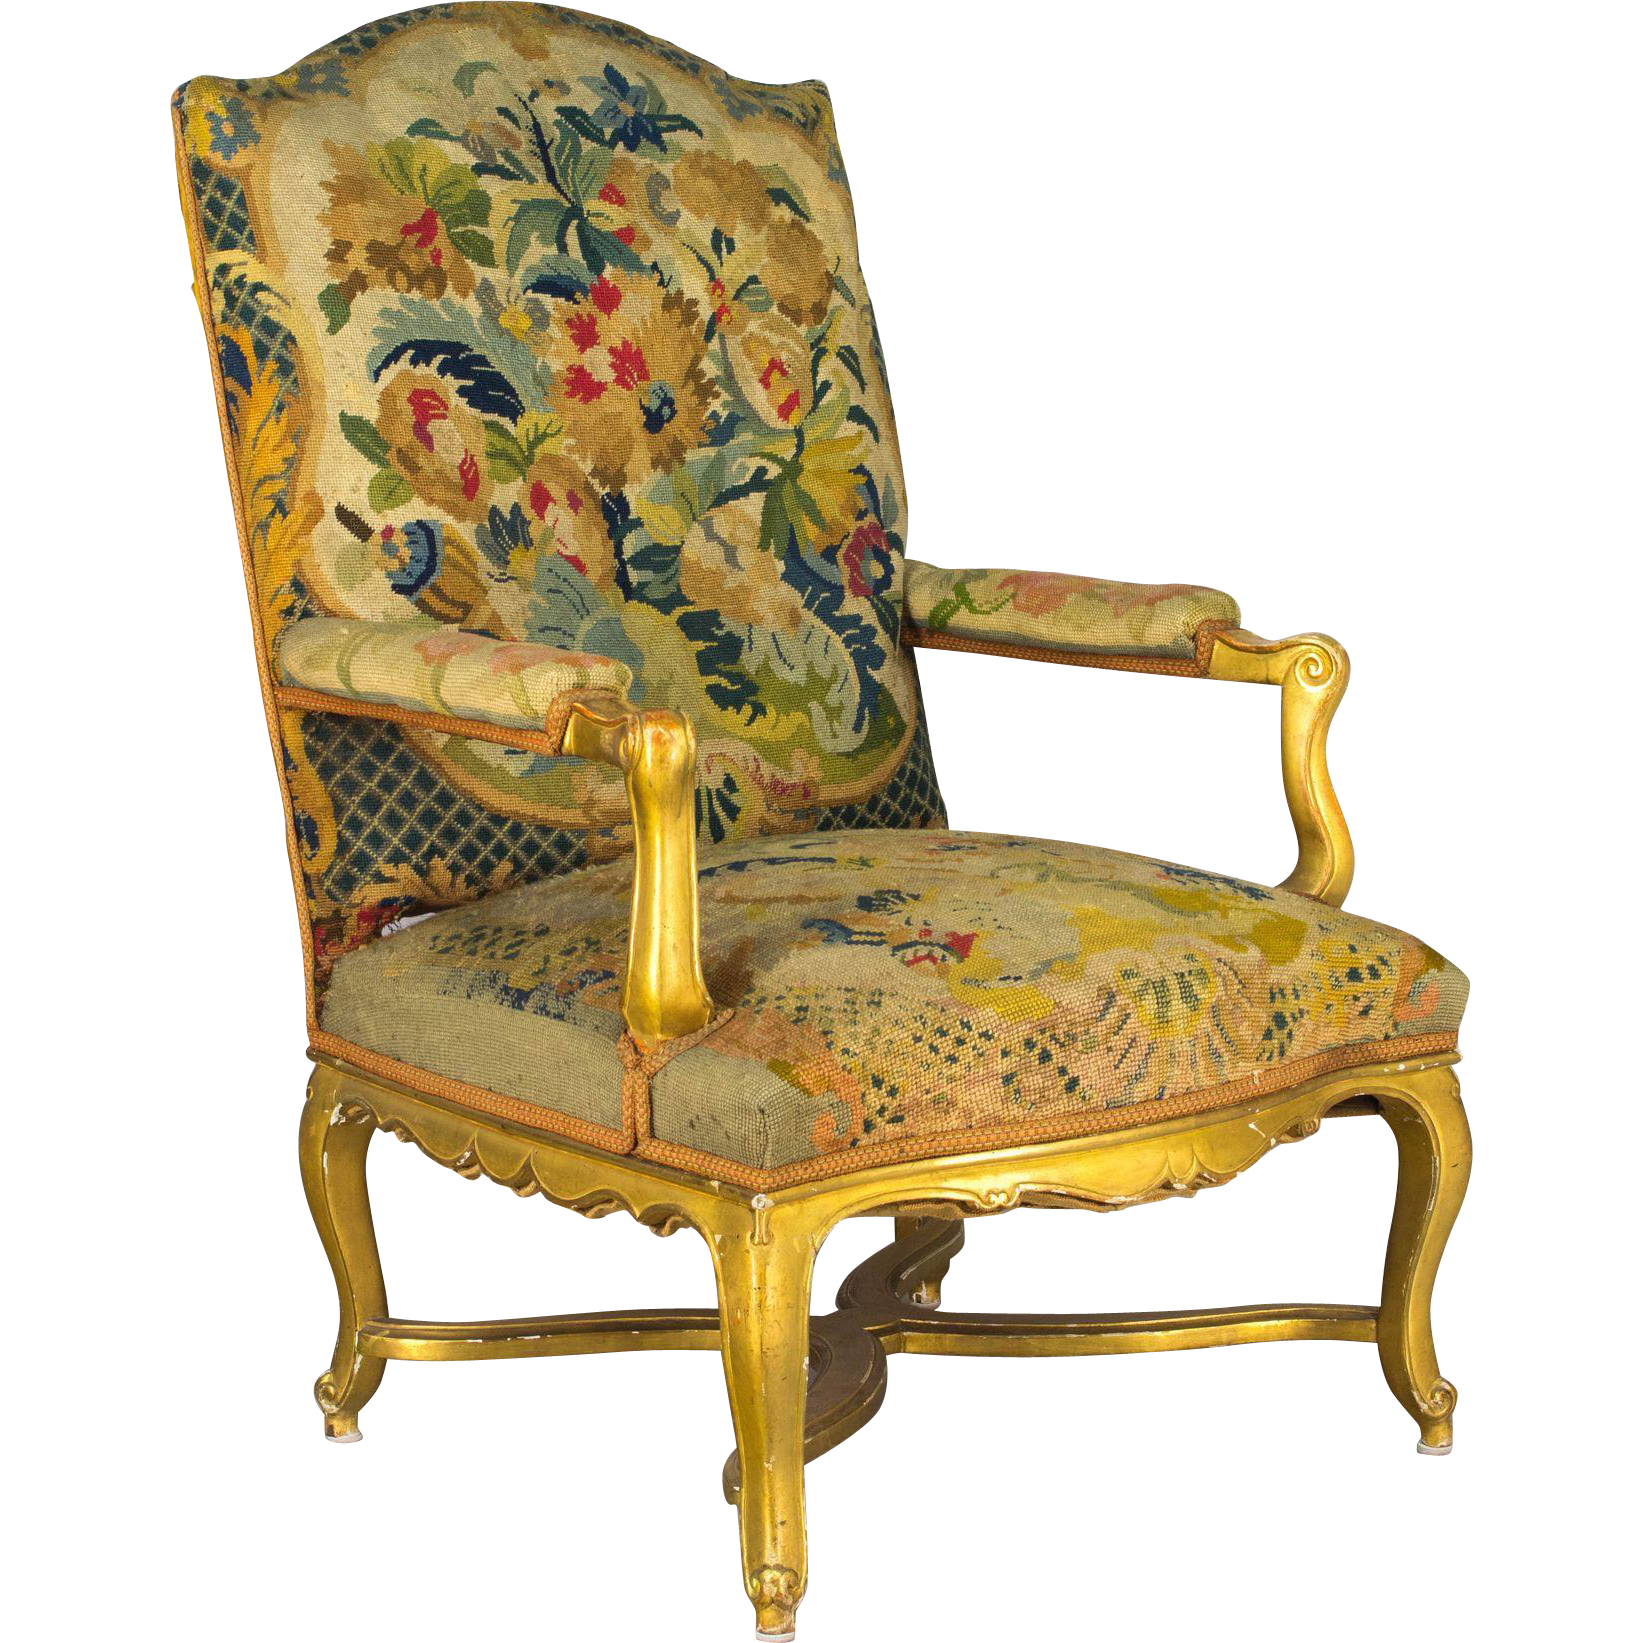 19th c. Gilded Fauteuil or Armchair